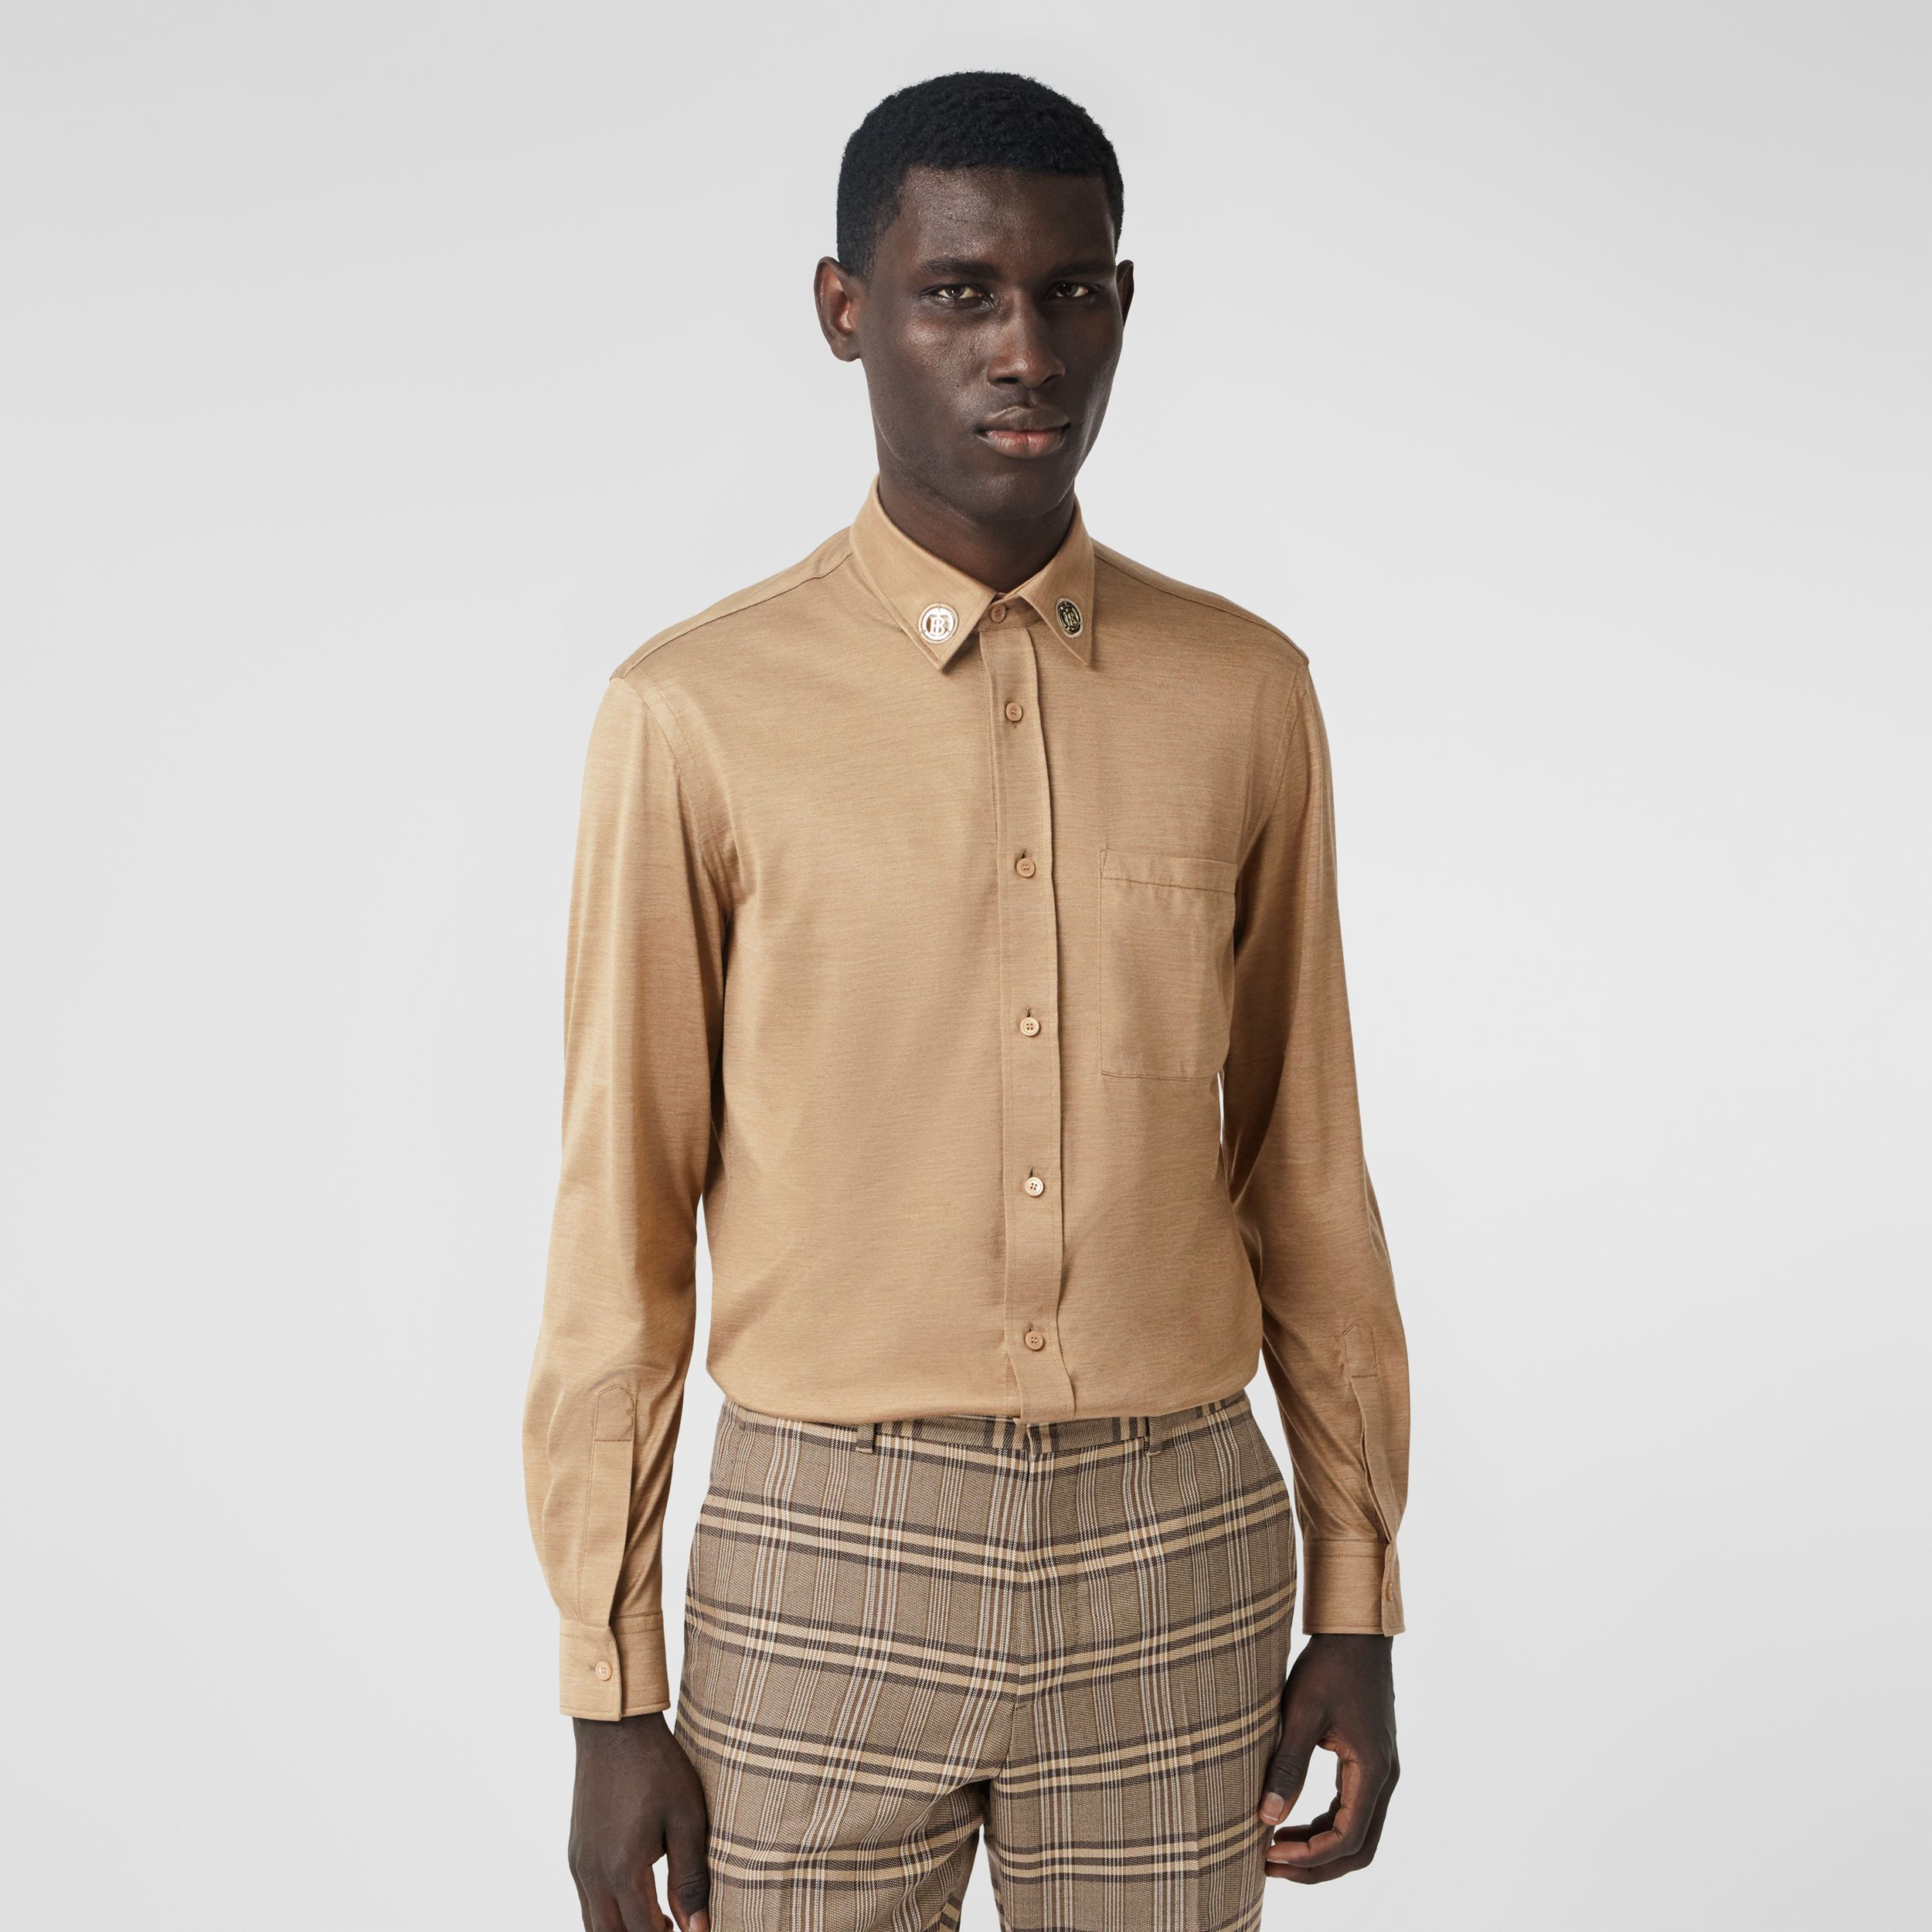 Classic Fit Monogram Motif Silk Jersey Shirt in Soft Fawn | Burberry - 1